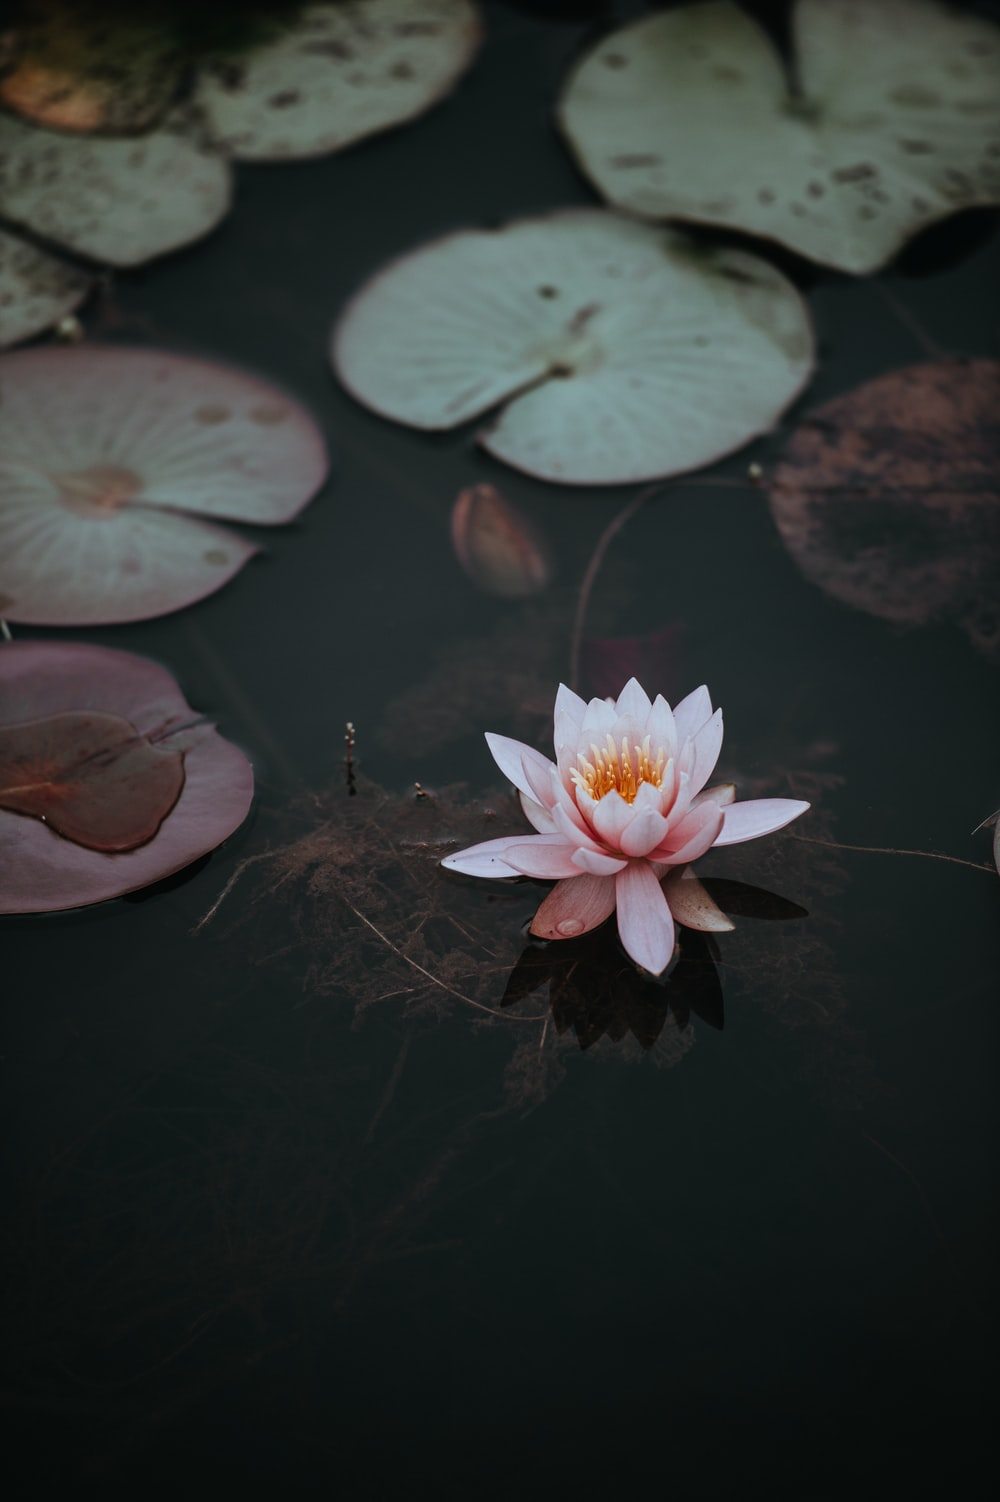 Pond pictures download free images on unsplash a pink water lily next to lily pads on the dark surface of a pond izmirmasajfo